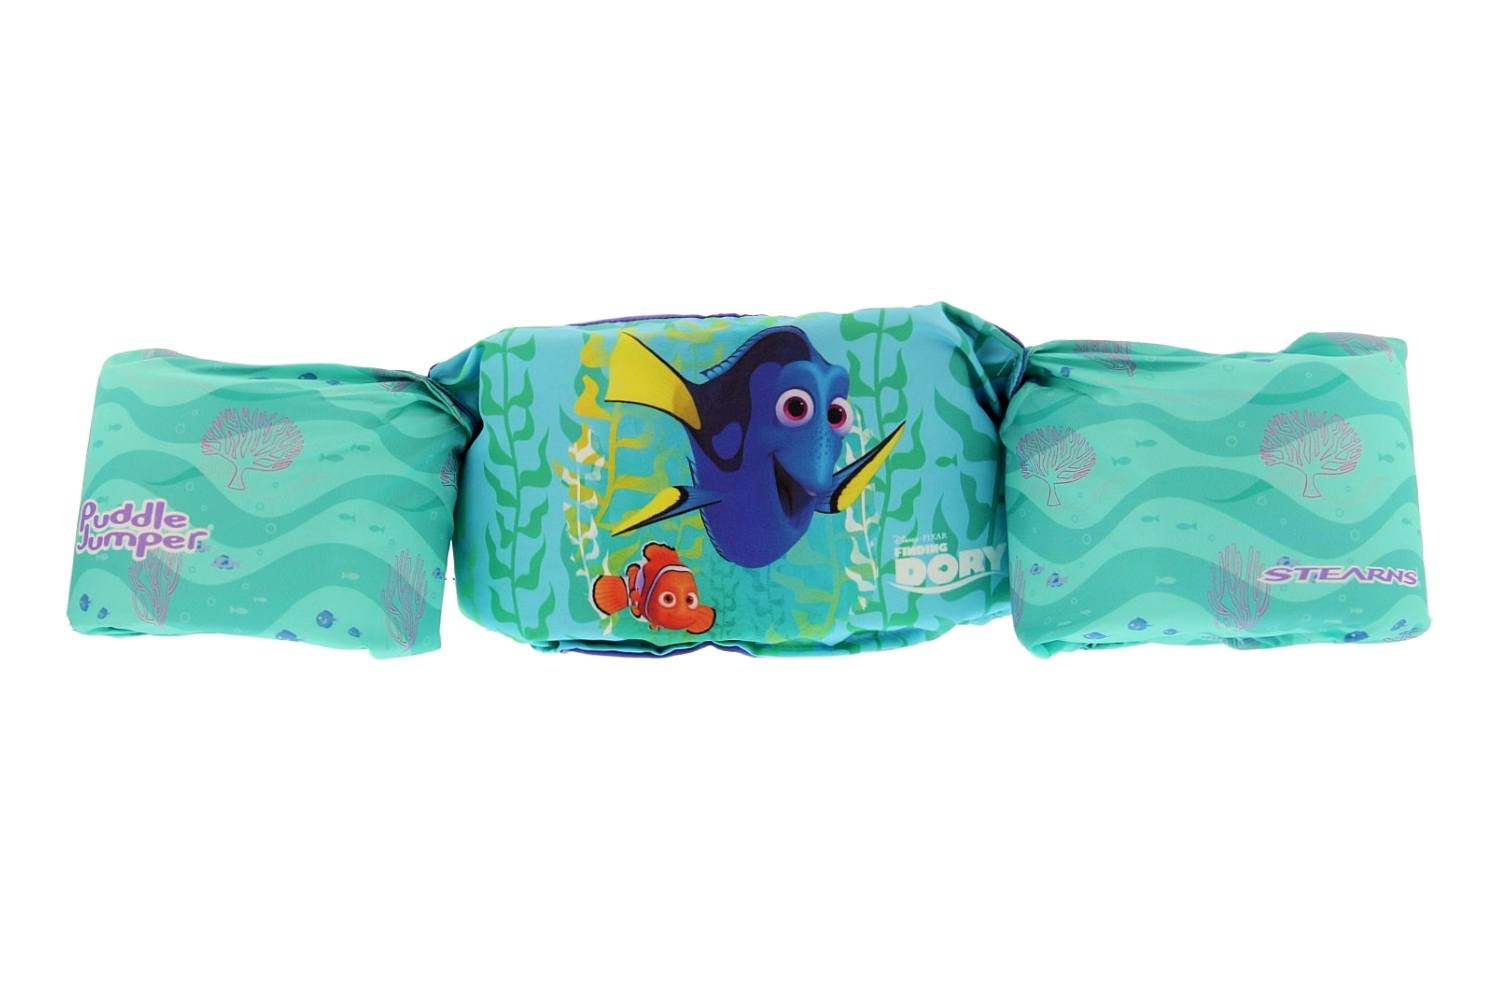 Stearns Original Puddle Jumper Deluxe Child Life Jacket, Fits 30-50 lbs by